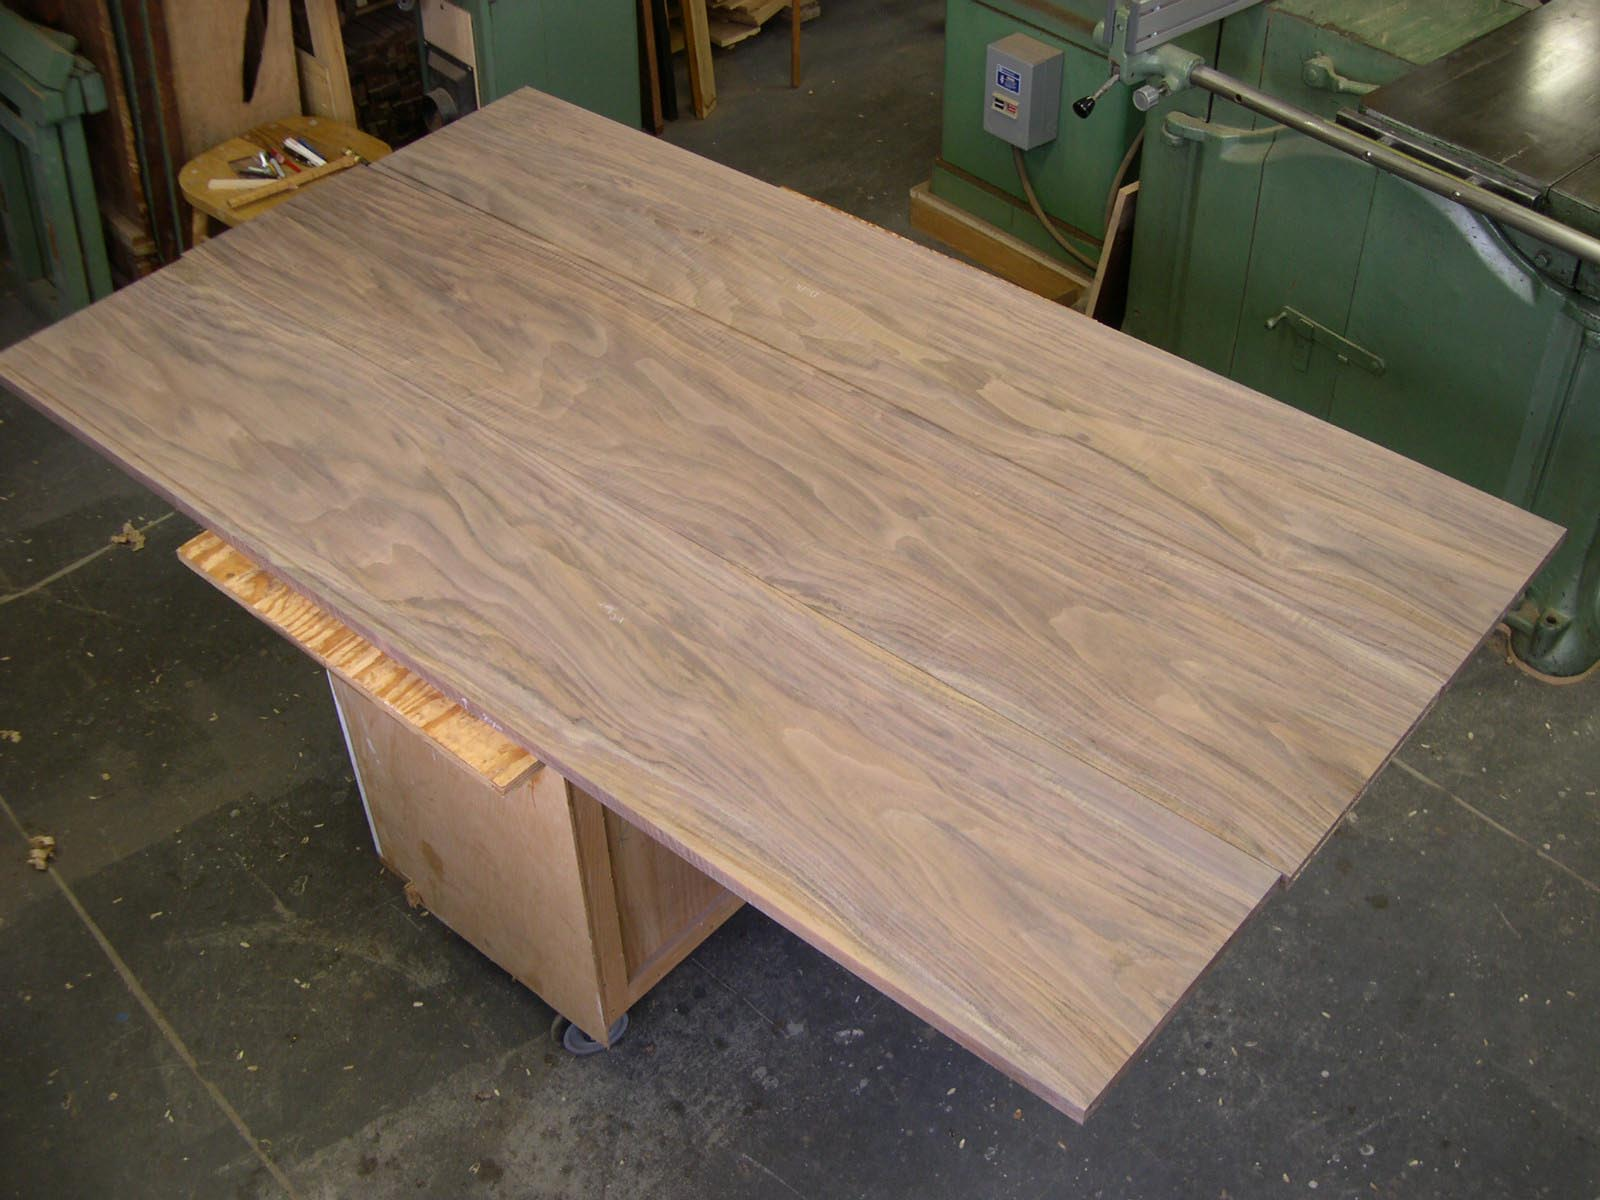 Sauer & Steiner: Gluing up the dining table top